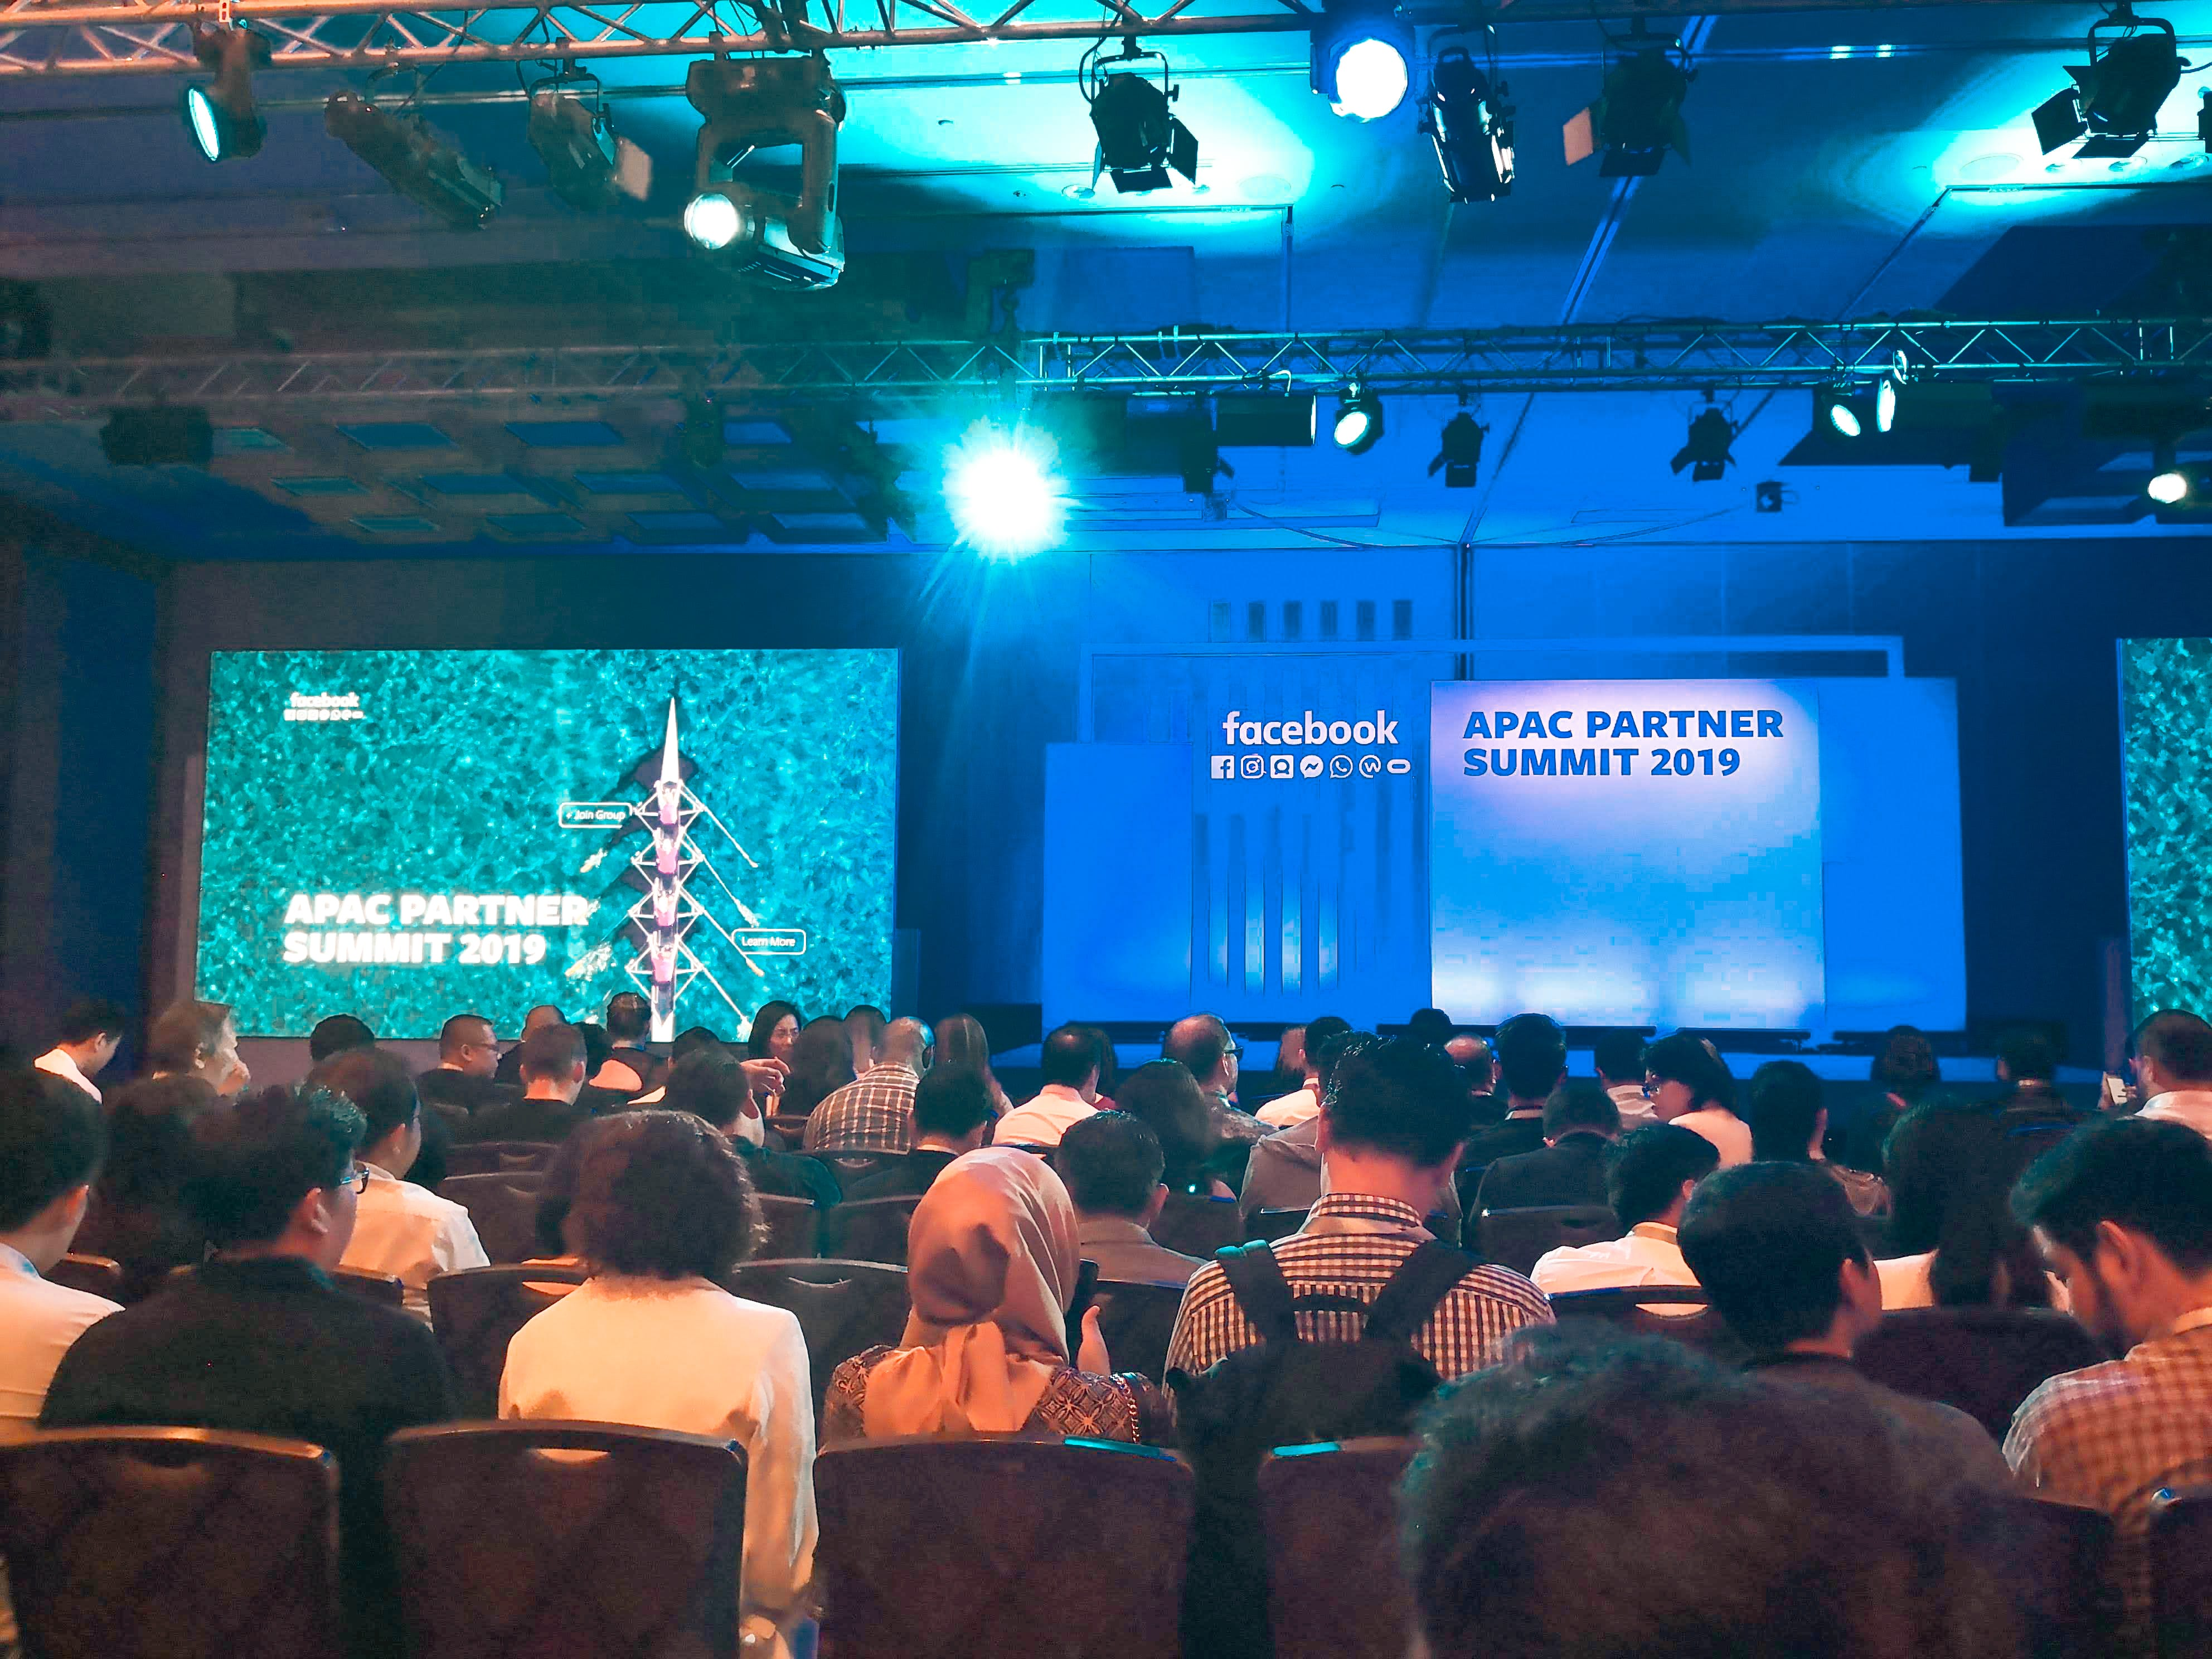 Business Trip Report] We are invited at the Facebook APAC